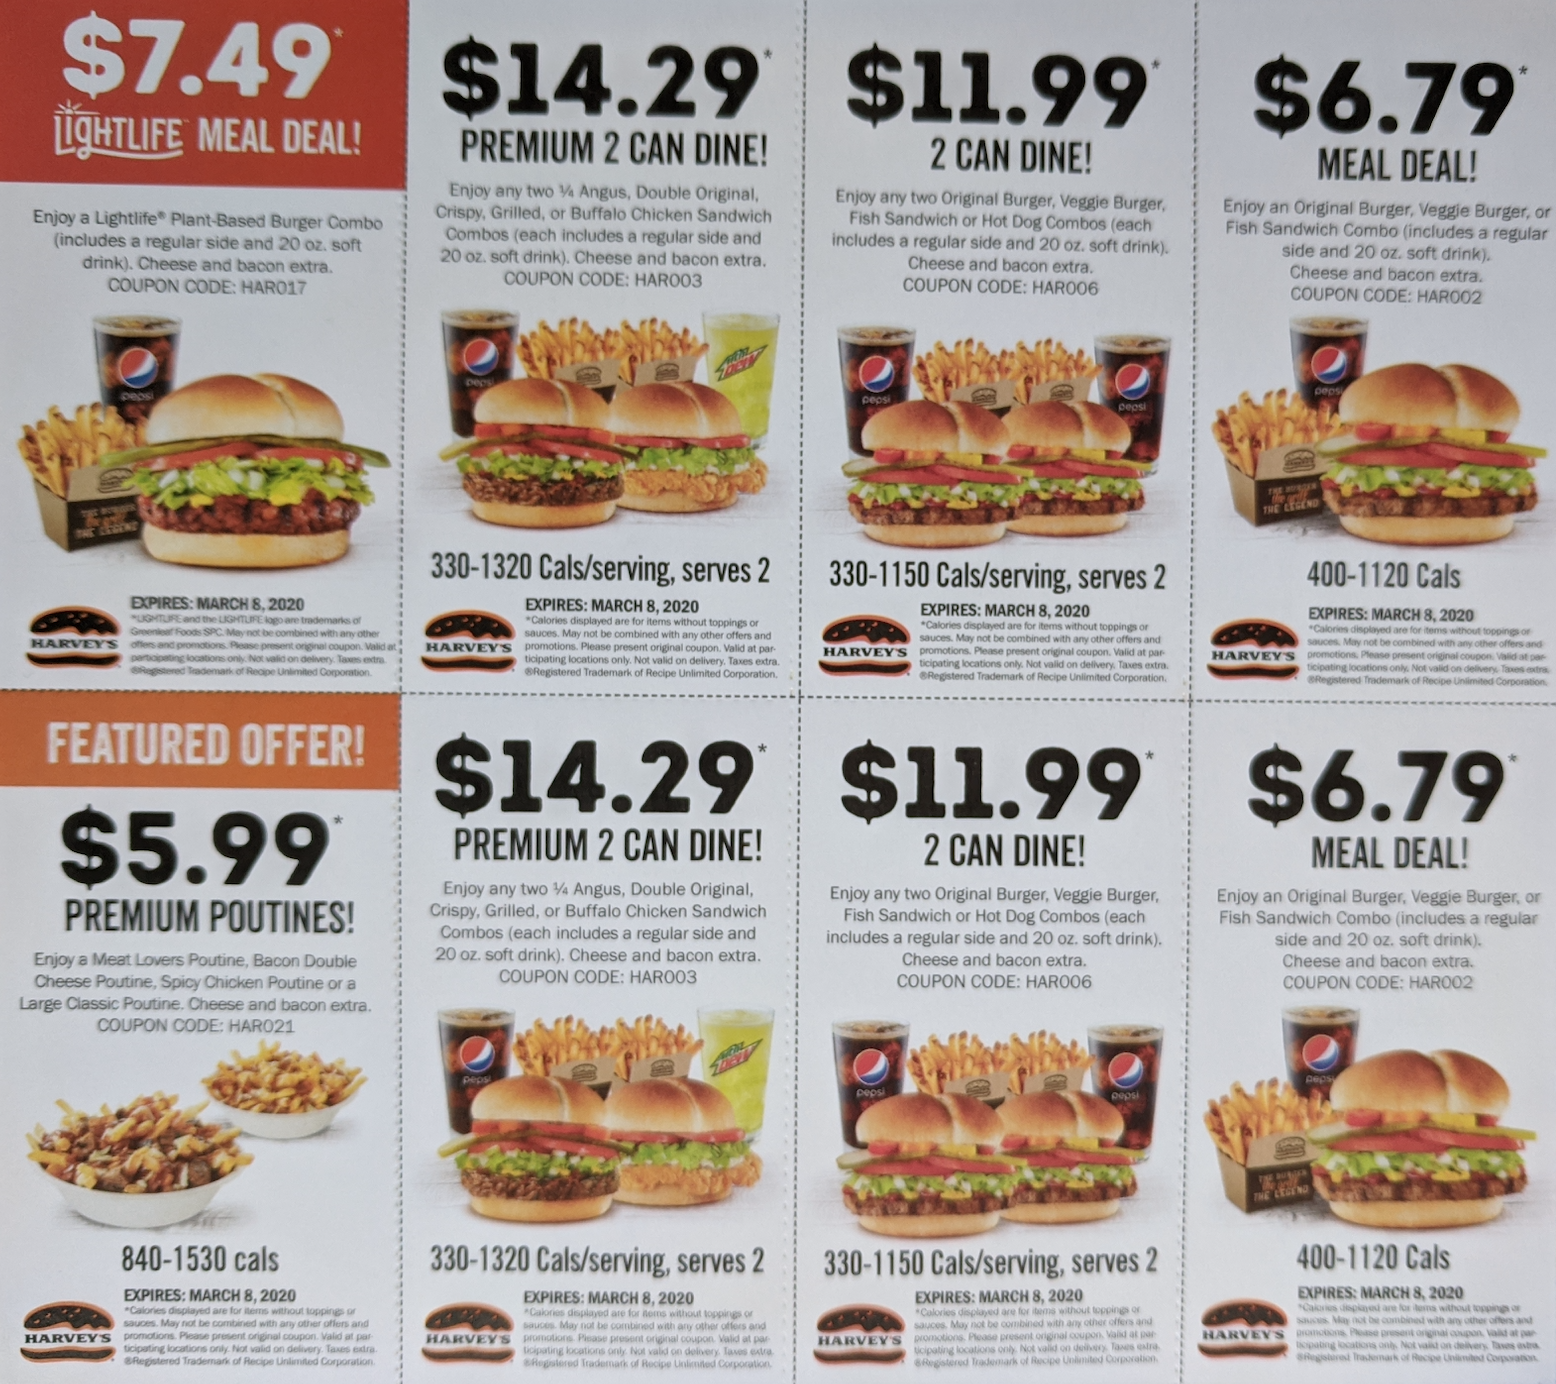 Harvey S Canada New Coupons Chicken Wrap For 5 49 Meal Deal For 6 79 Angus Meal Deal For 7 79 More Coupons